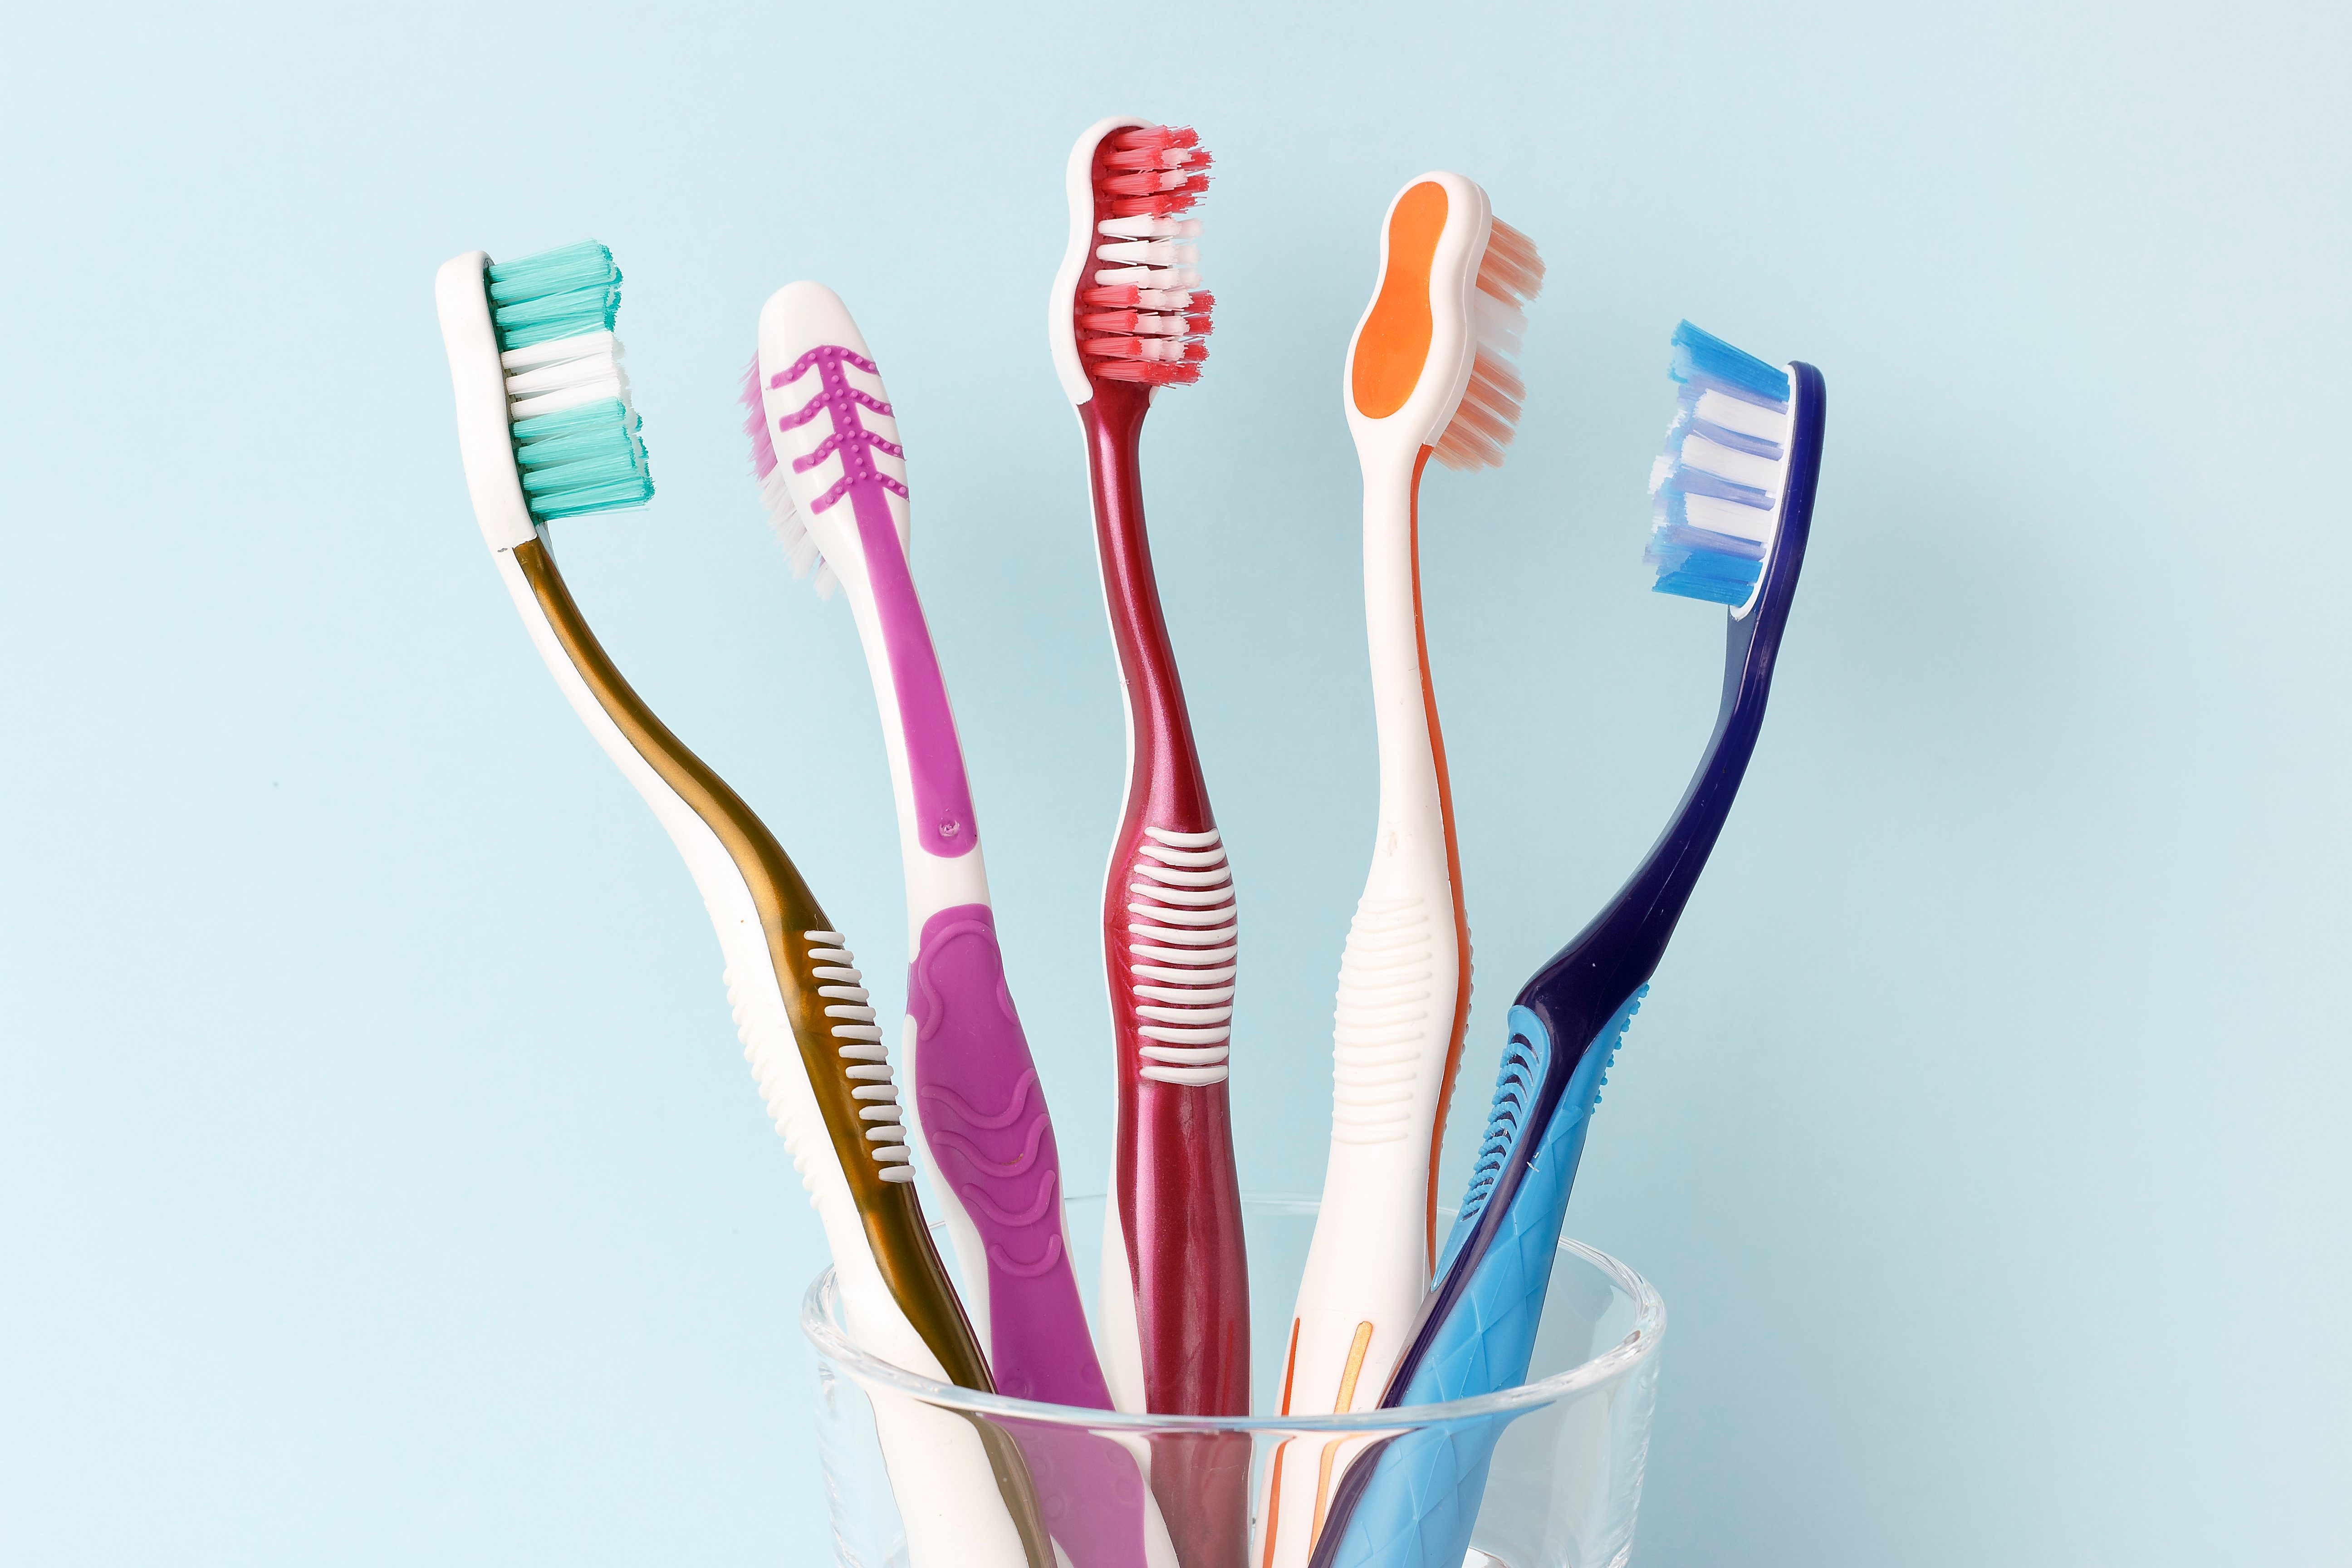 reusable household items